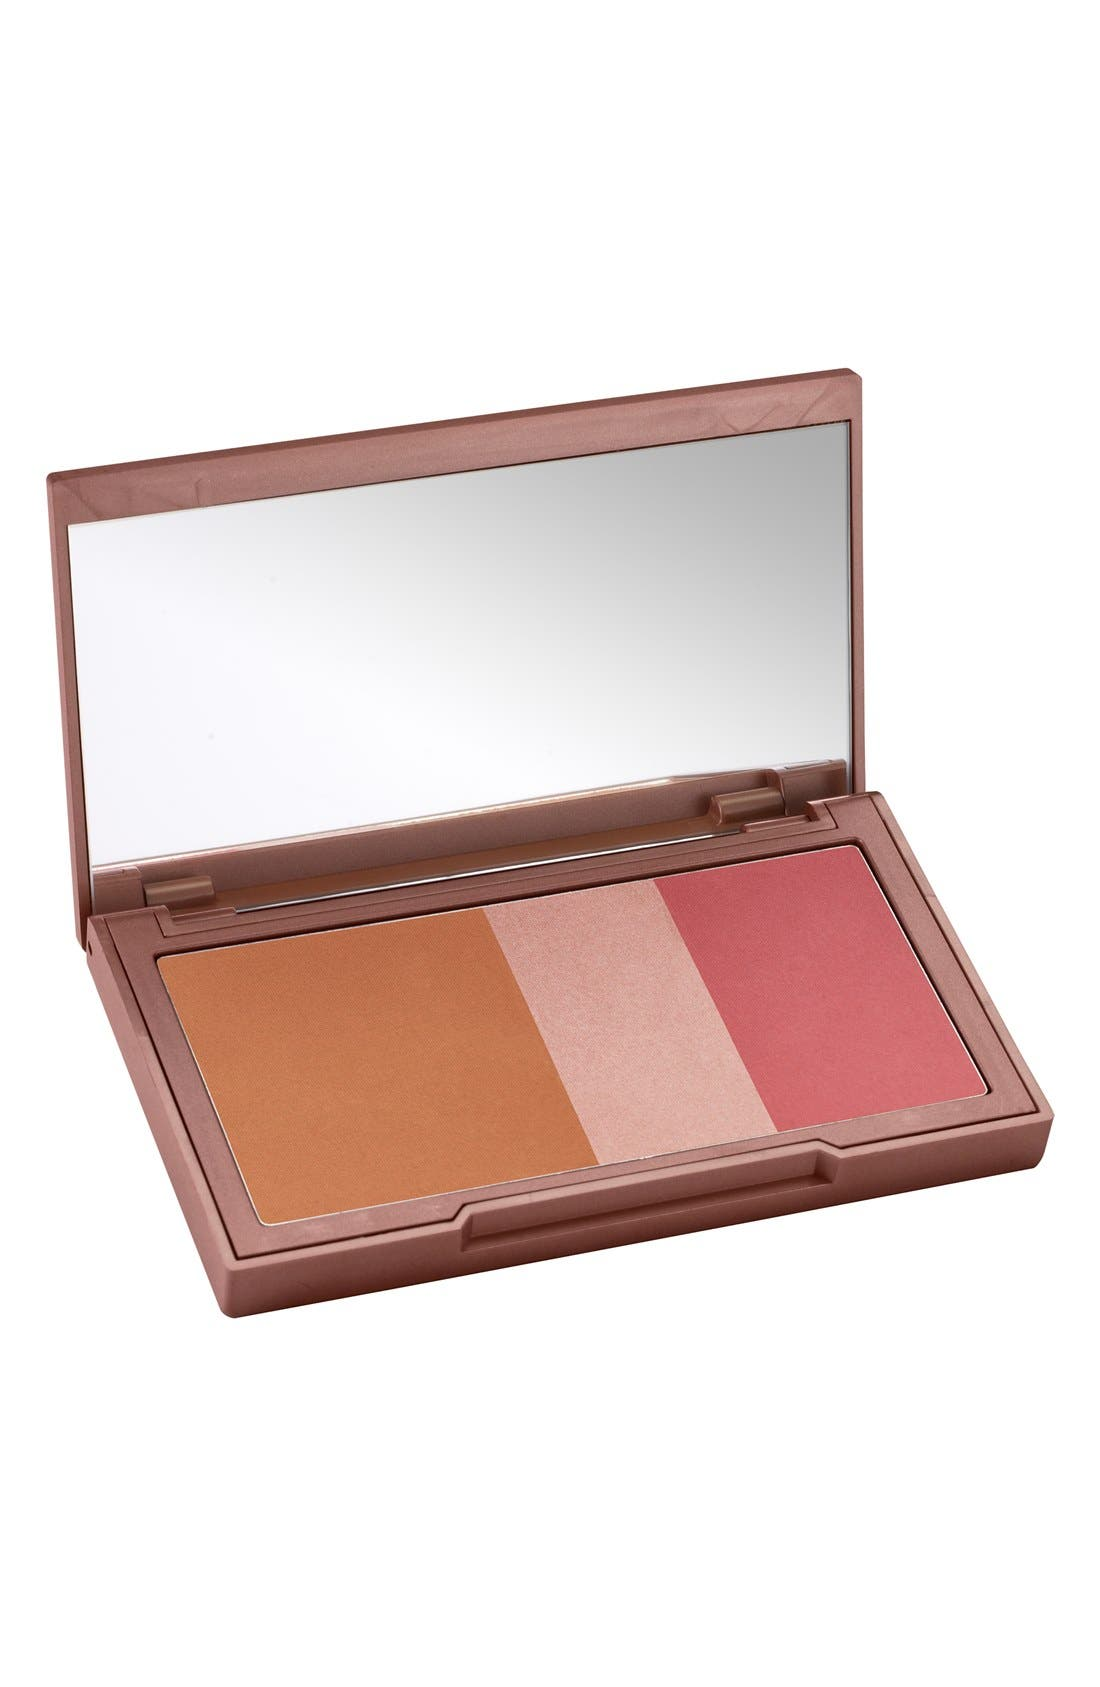 Naked Flushed Bronzer, Highlighter & Blush Palette,                             Alternate thumbnail 6, color,                             NAKED